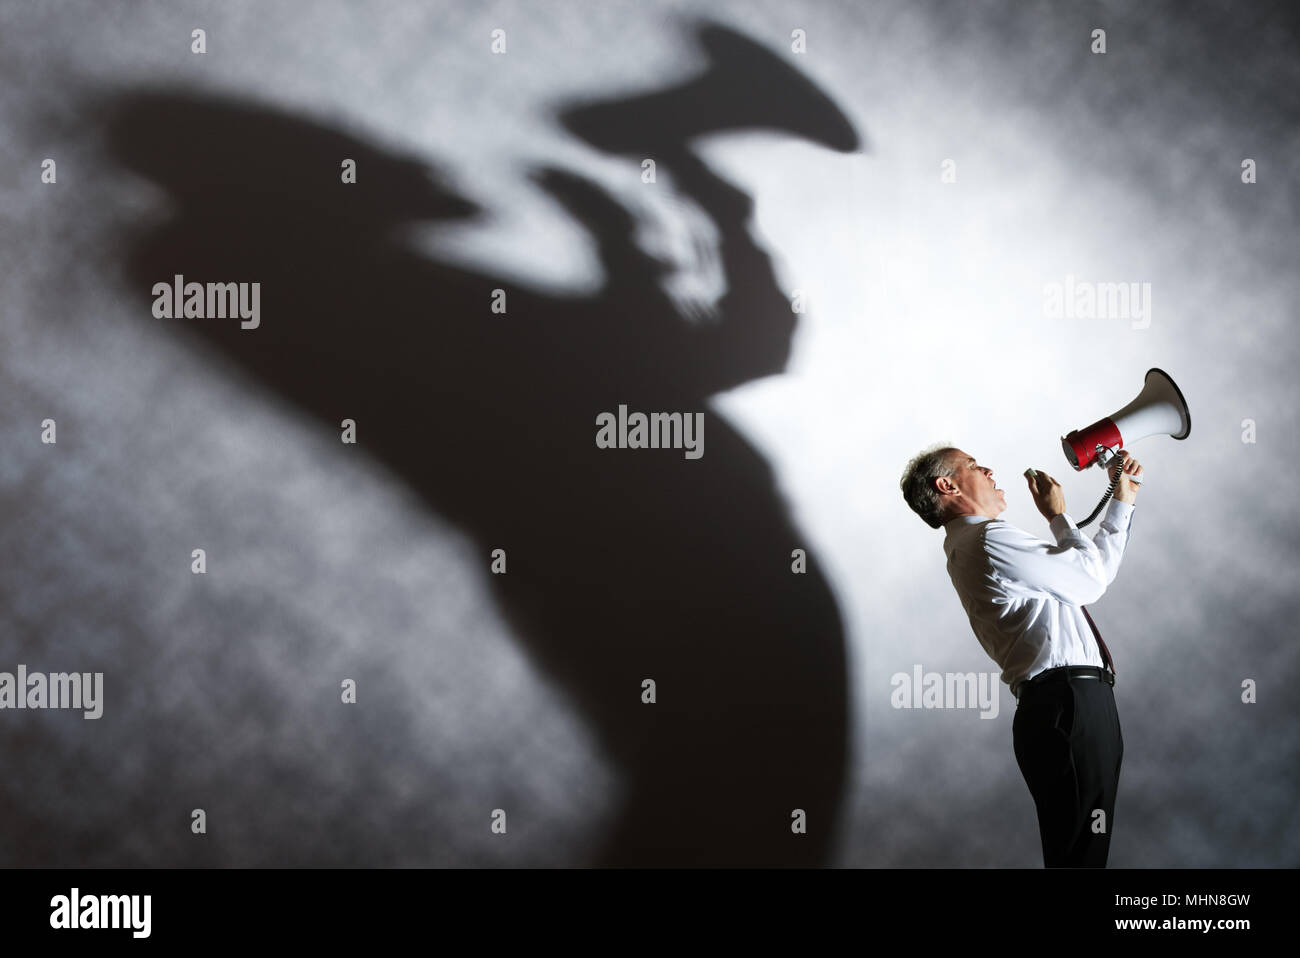 Man with megaphone and enormous shadow - Stock Image